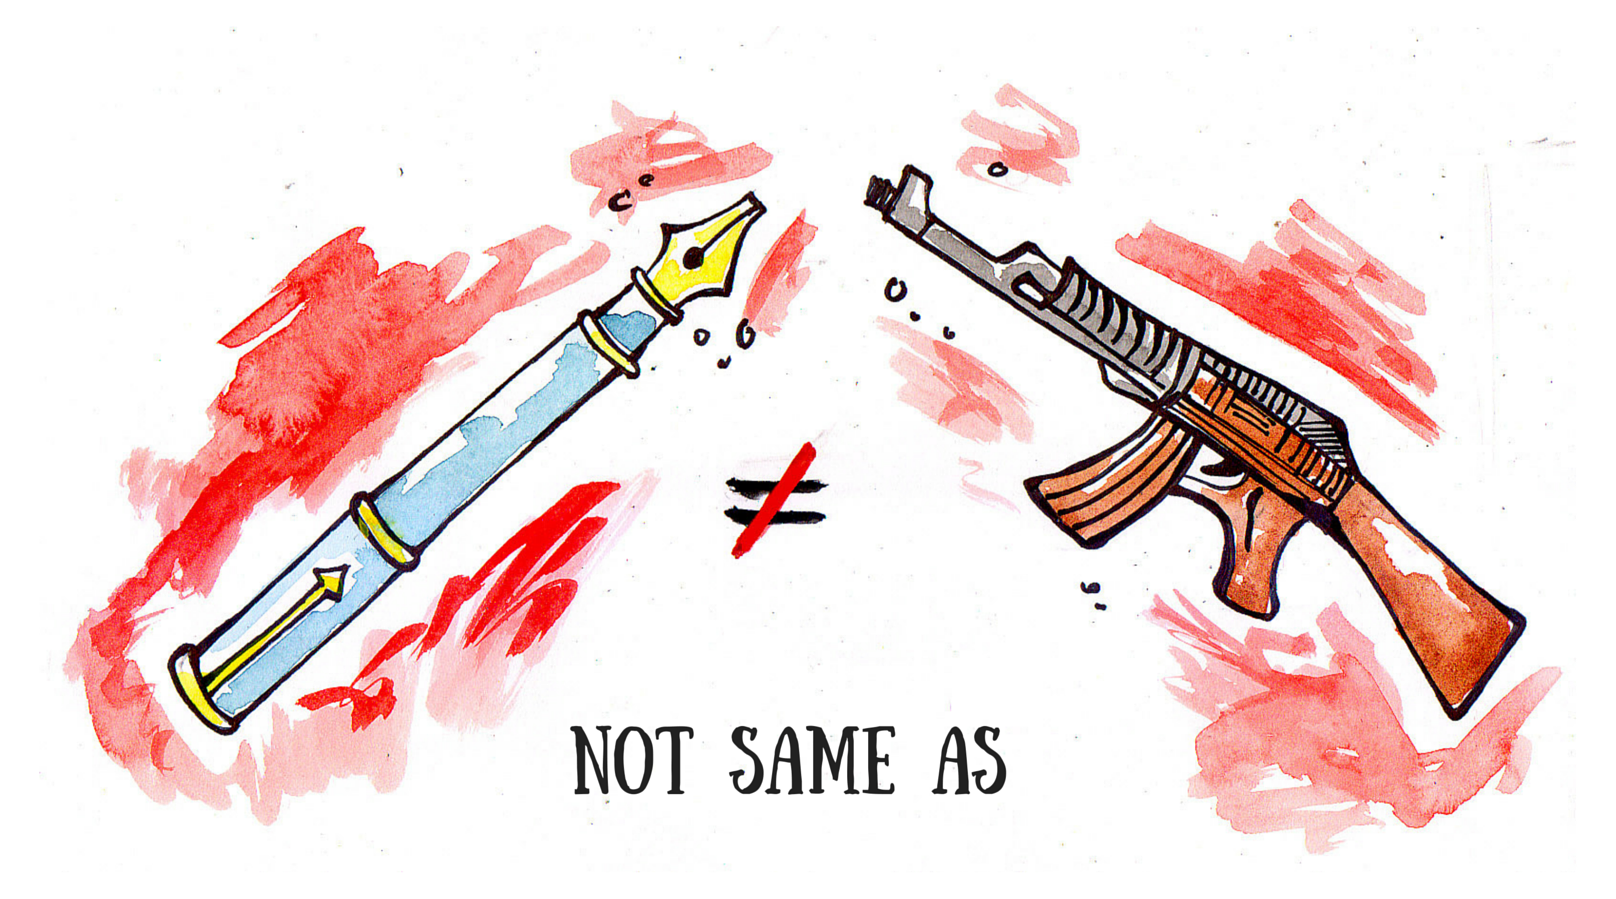 The Indian political cartoonist the government doesn't want you to know about